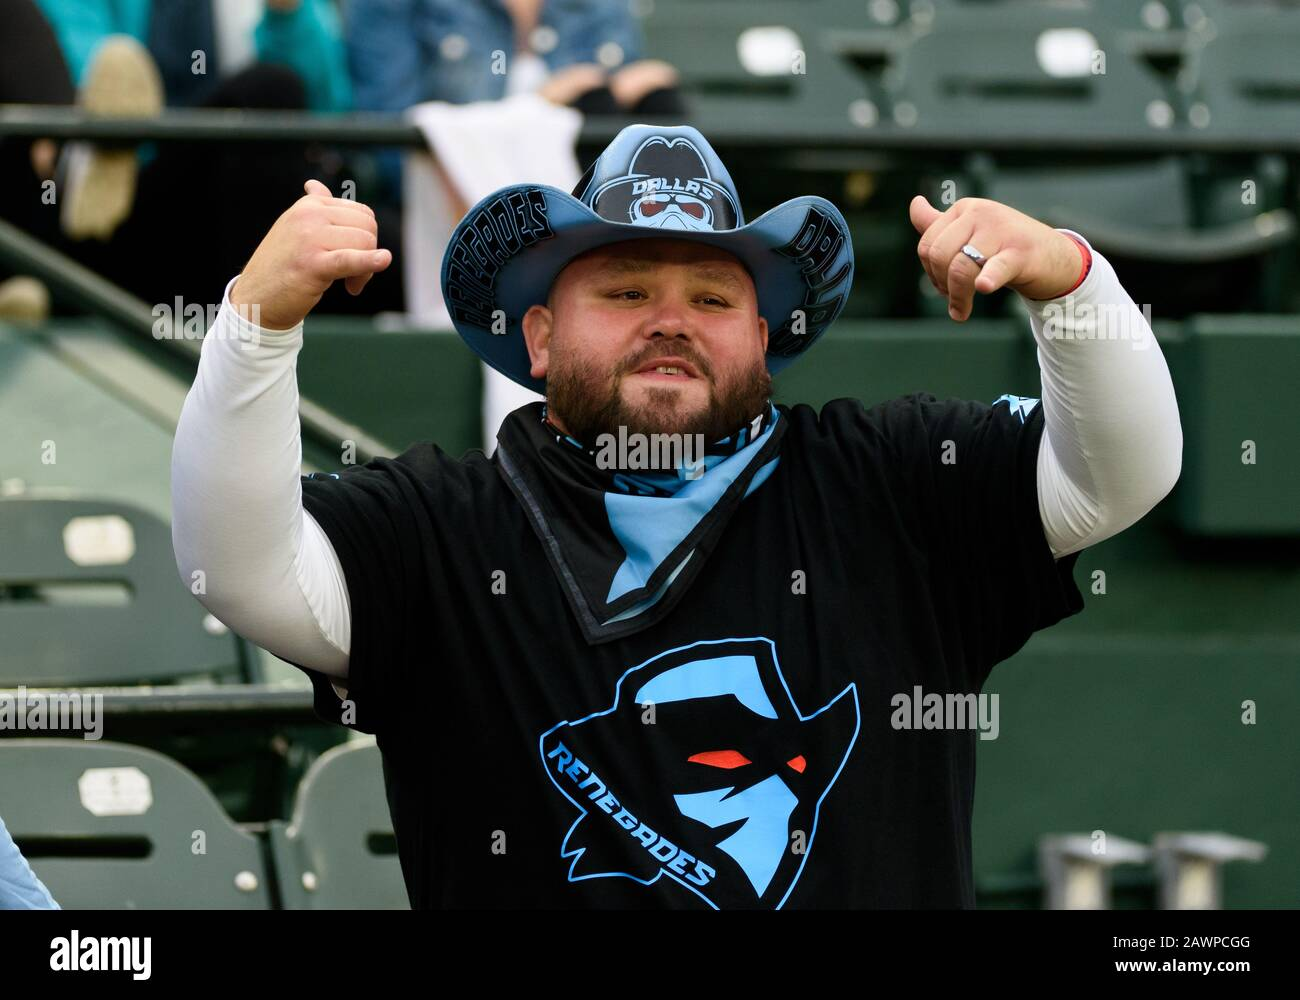 Arlington, Texas, USA. 9th Feb, 2020. Dallas Renegades fan during the 1st half of the XFL game between St. Louis Battlehawks and the Dallas Renegades at Globe Life Park in Arlington, Texas. Credit: Cal Sport Media/Alamy Live News Stock Photo